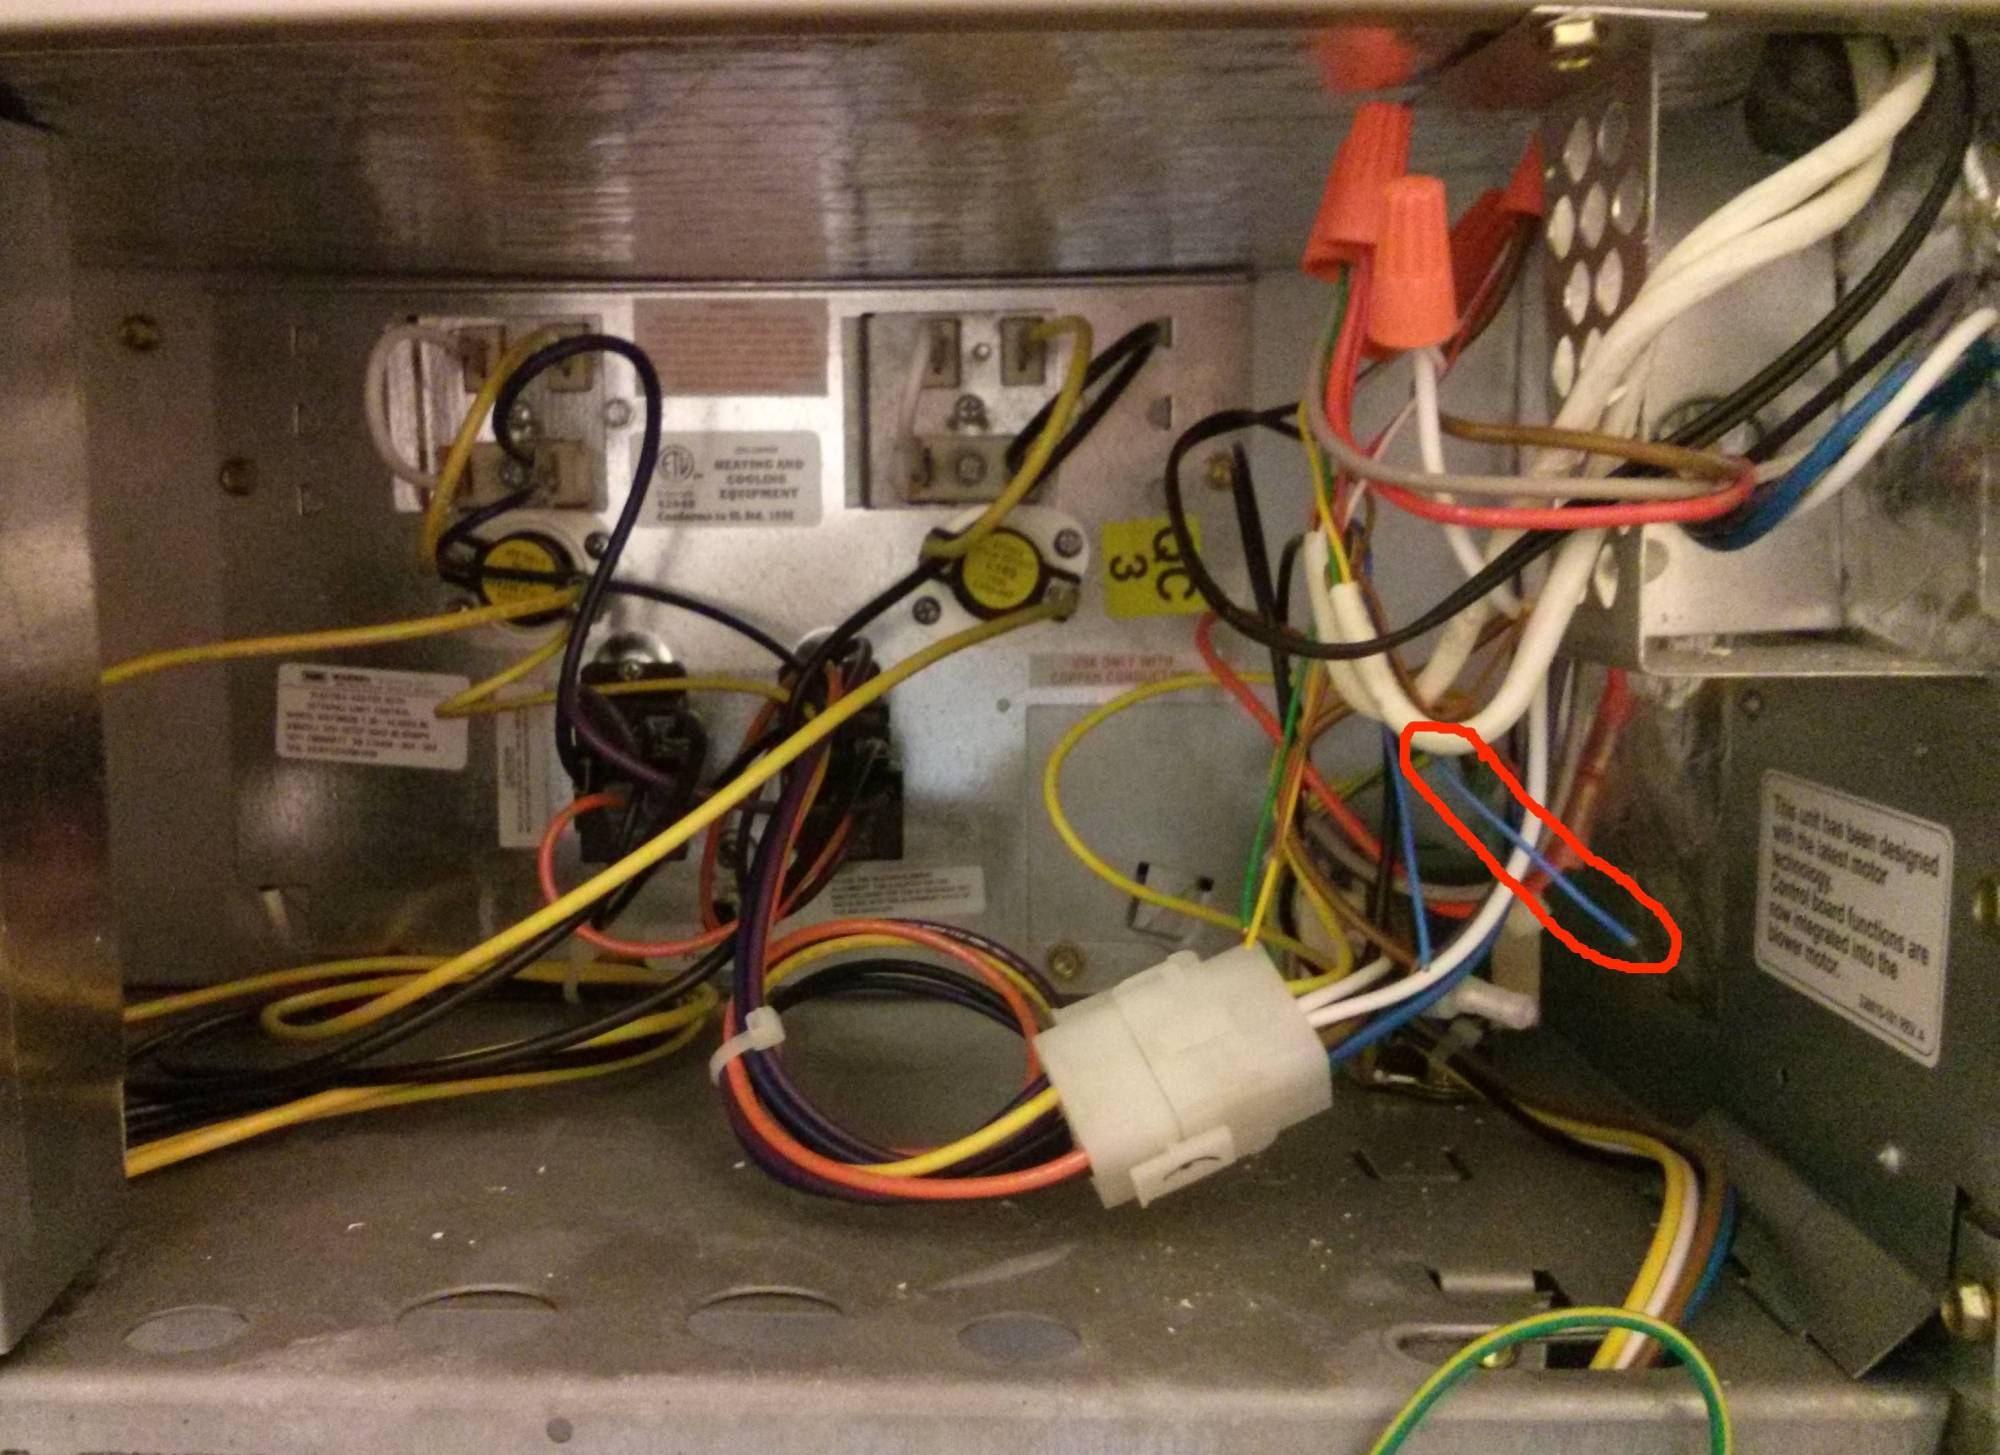 hight resolution of wiring how do i connect the common wire in a carrier air handler hvac fan relay wiring diagram wiring diagram for air handler